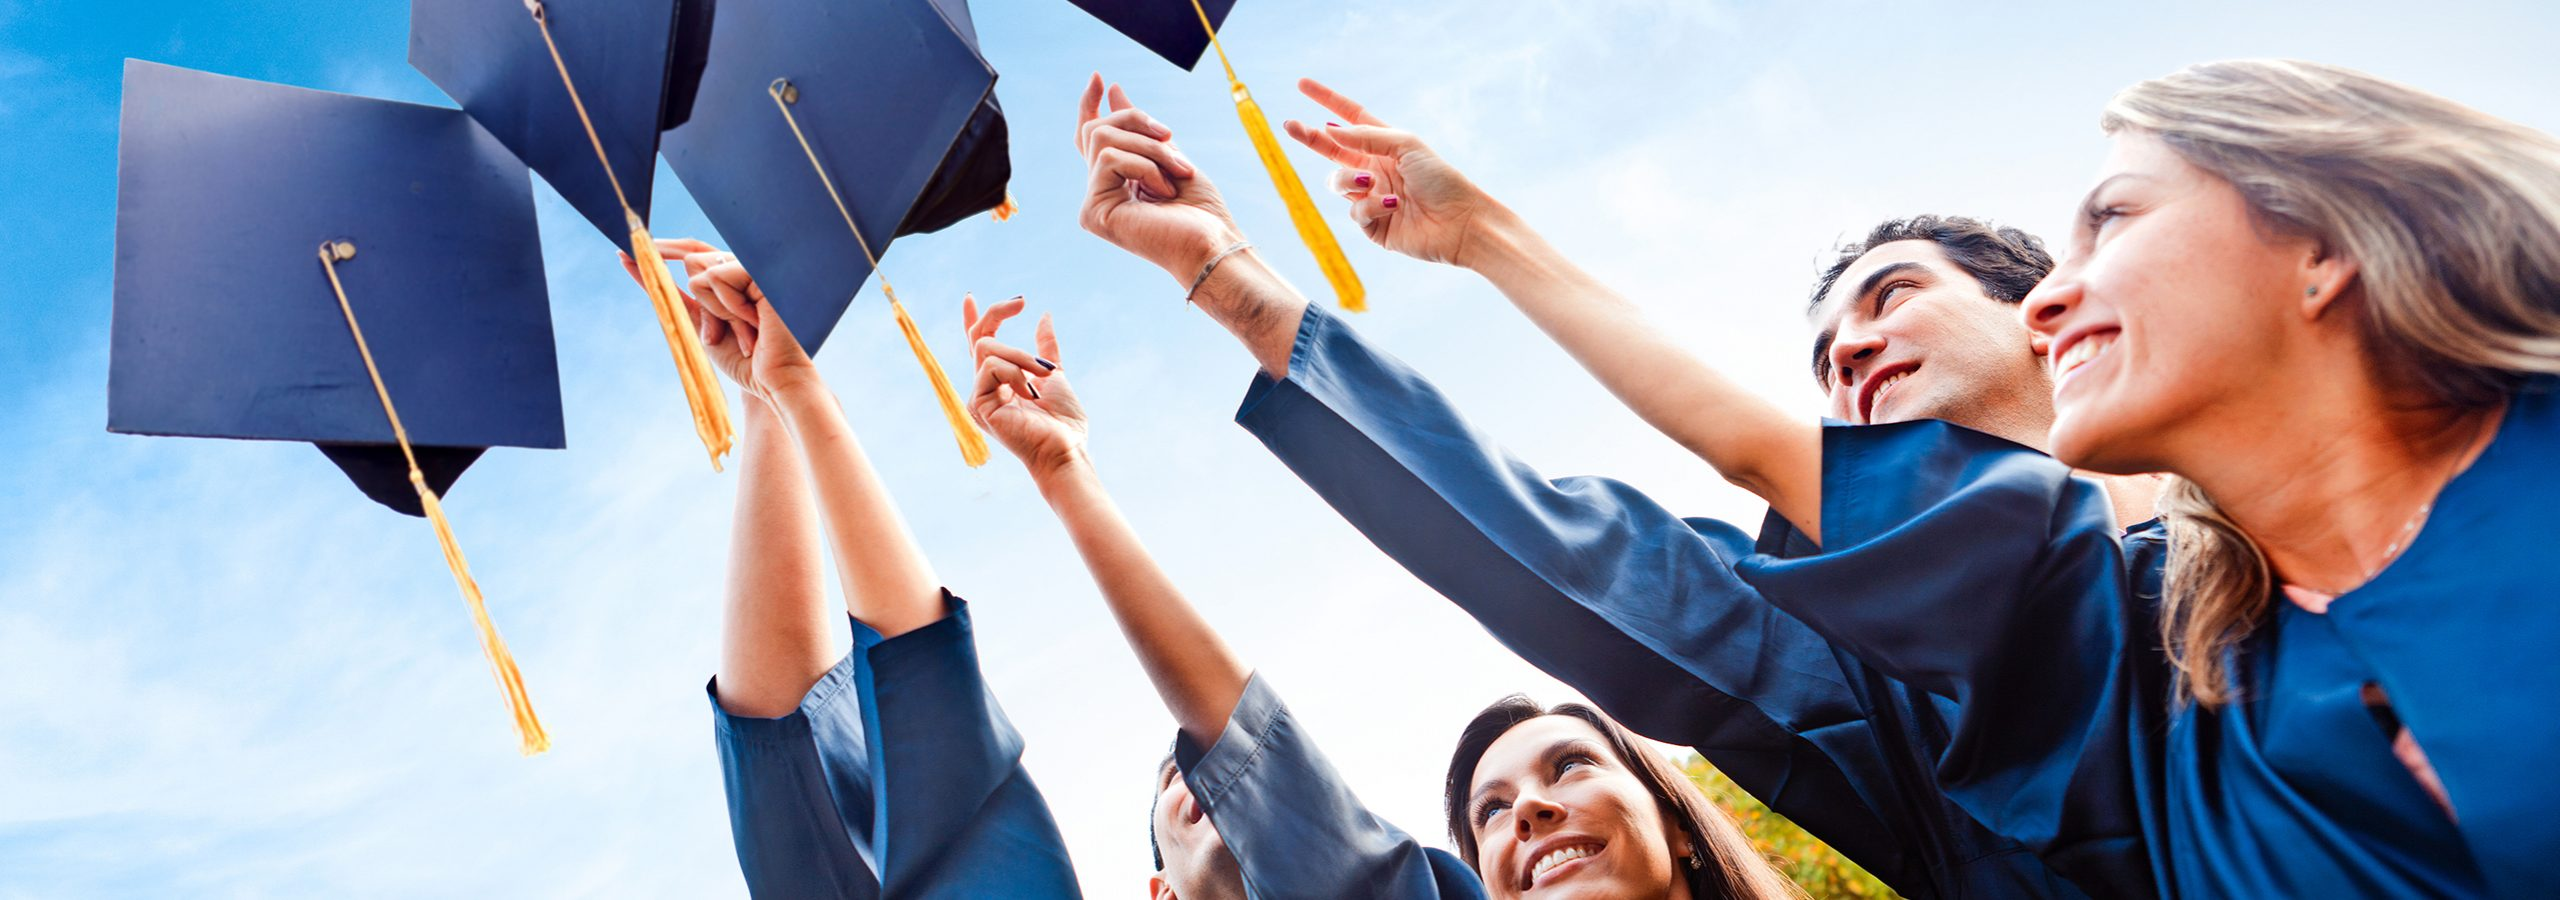 Graduates holding hat in the air